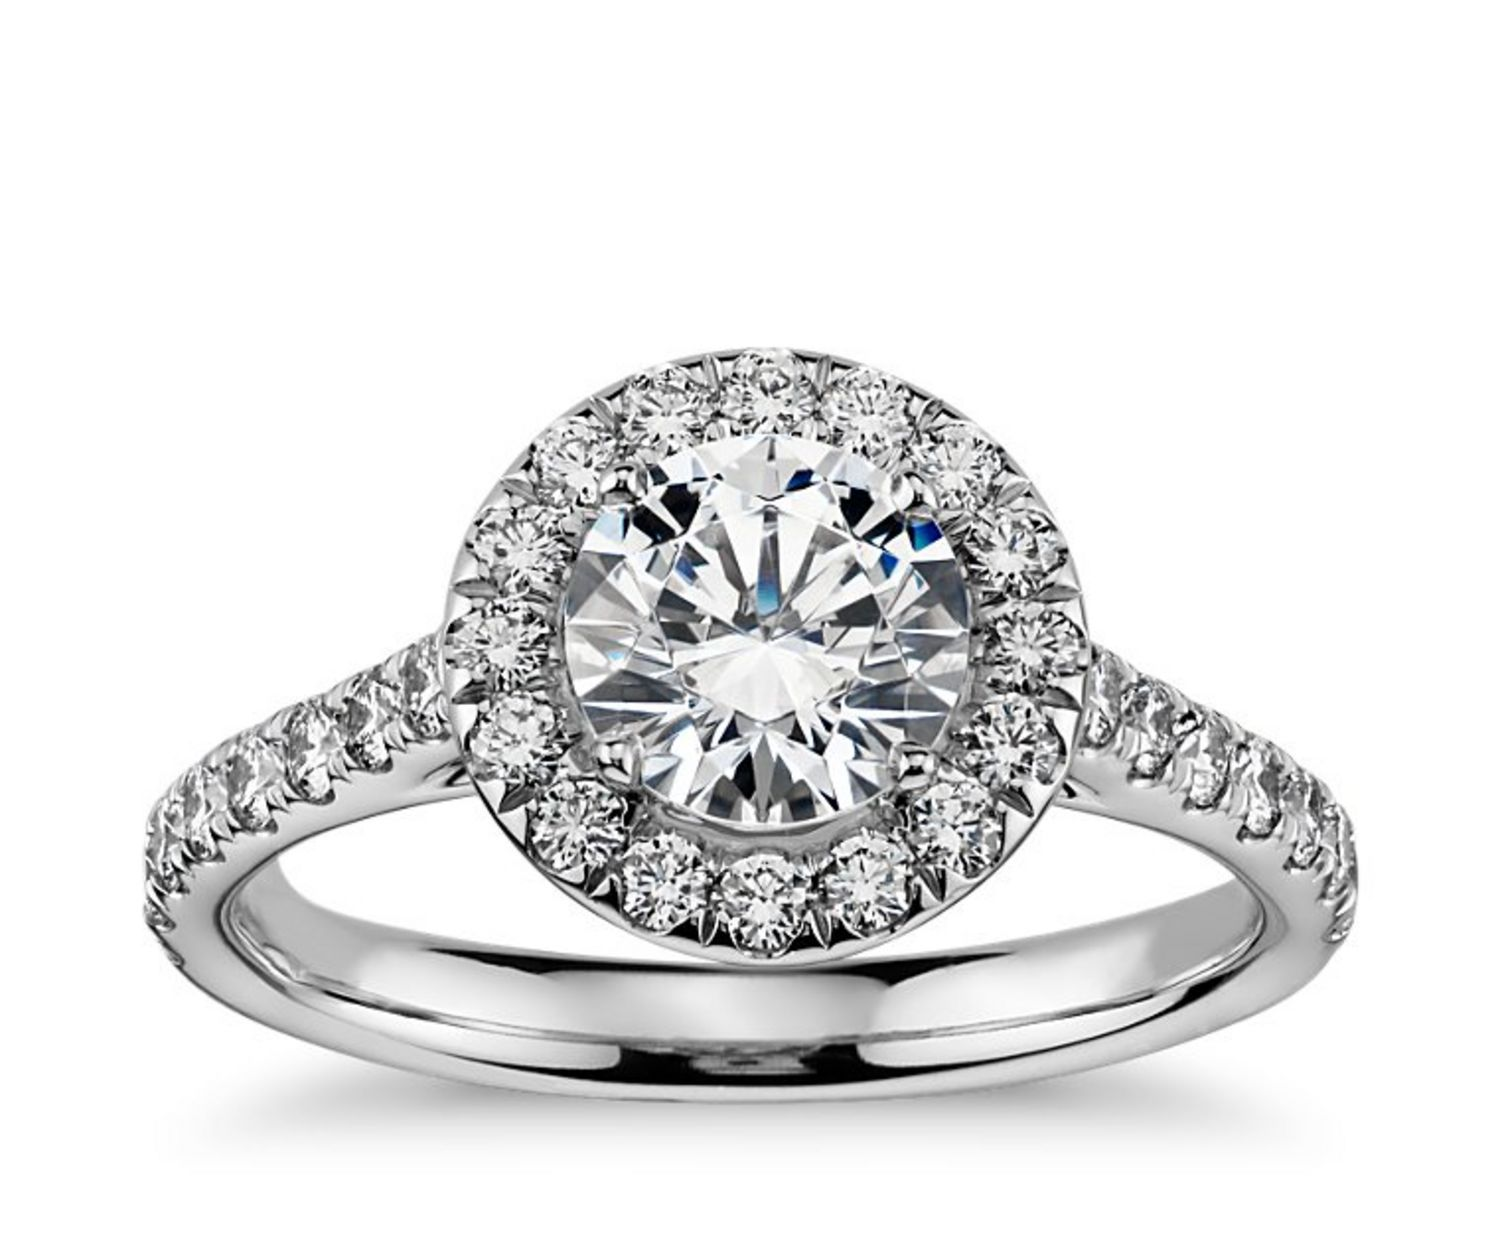 most popular wedding ring styles posts related to most common engagement rings - Wedding Ring Cost